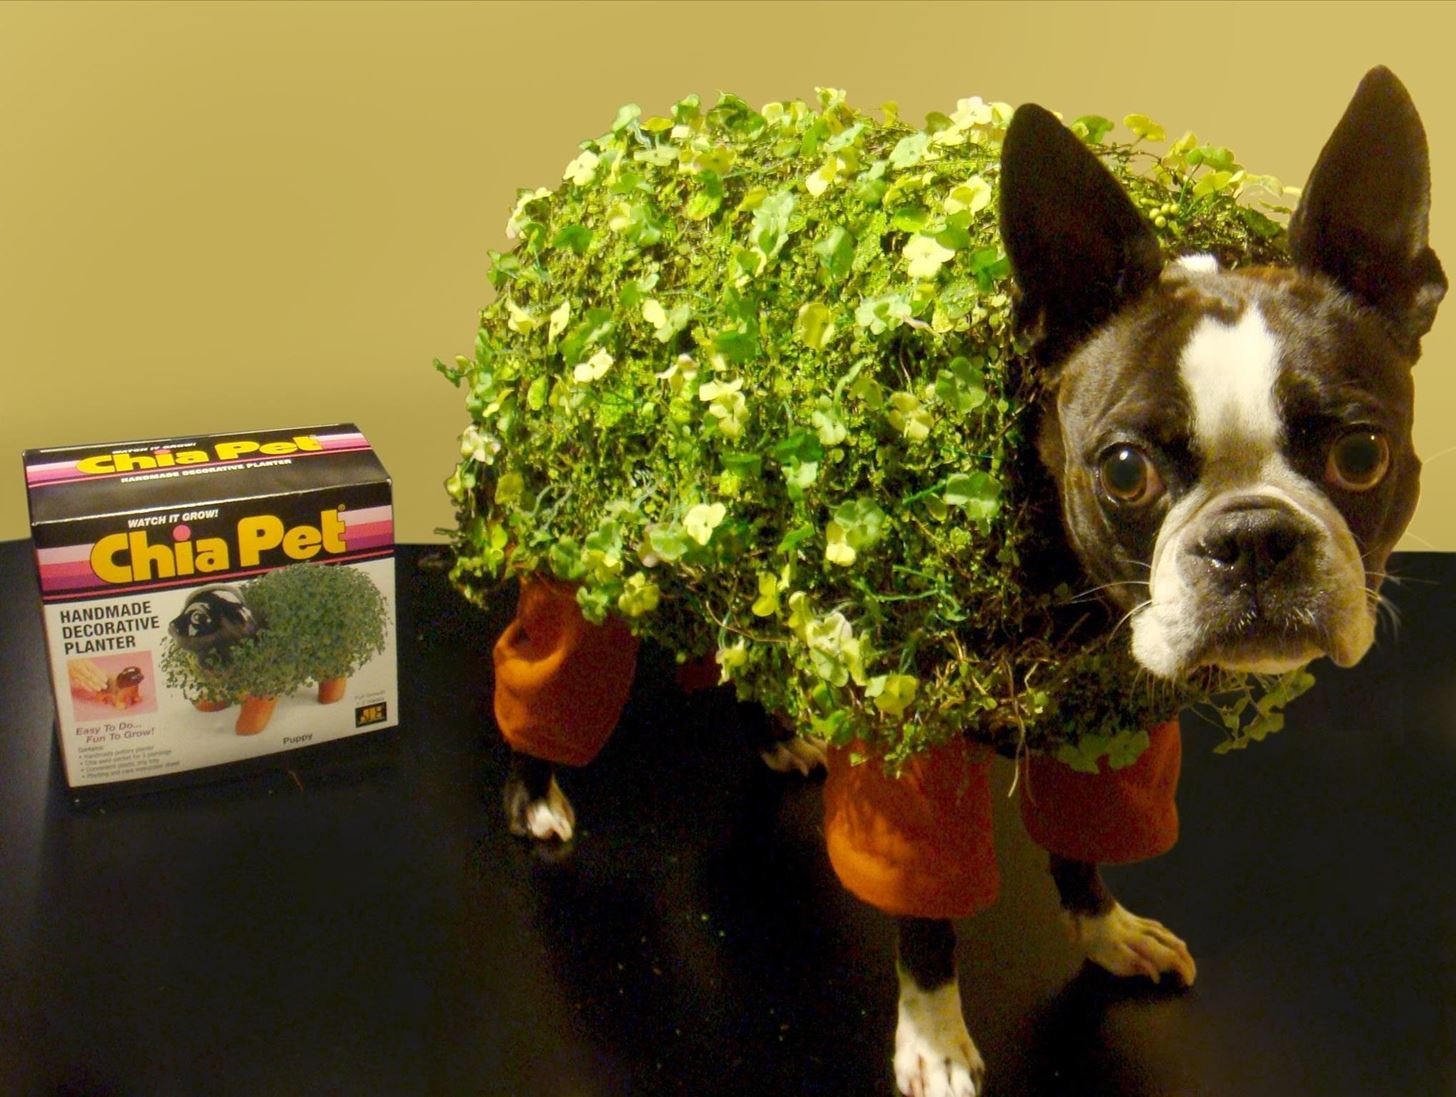 Chia pet pet costume plus 9 more adorable diy halloween costumes image via gobblegreen solutioingenieria Choice Image